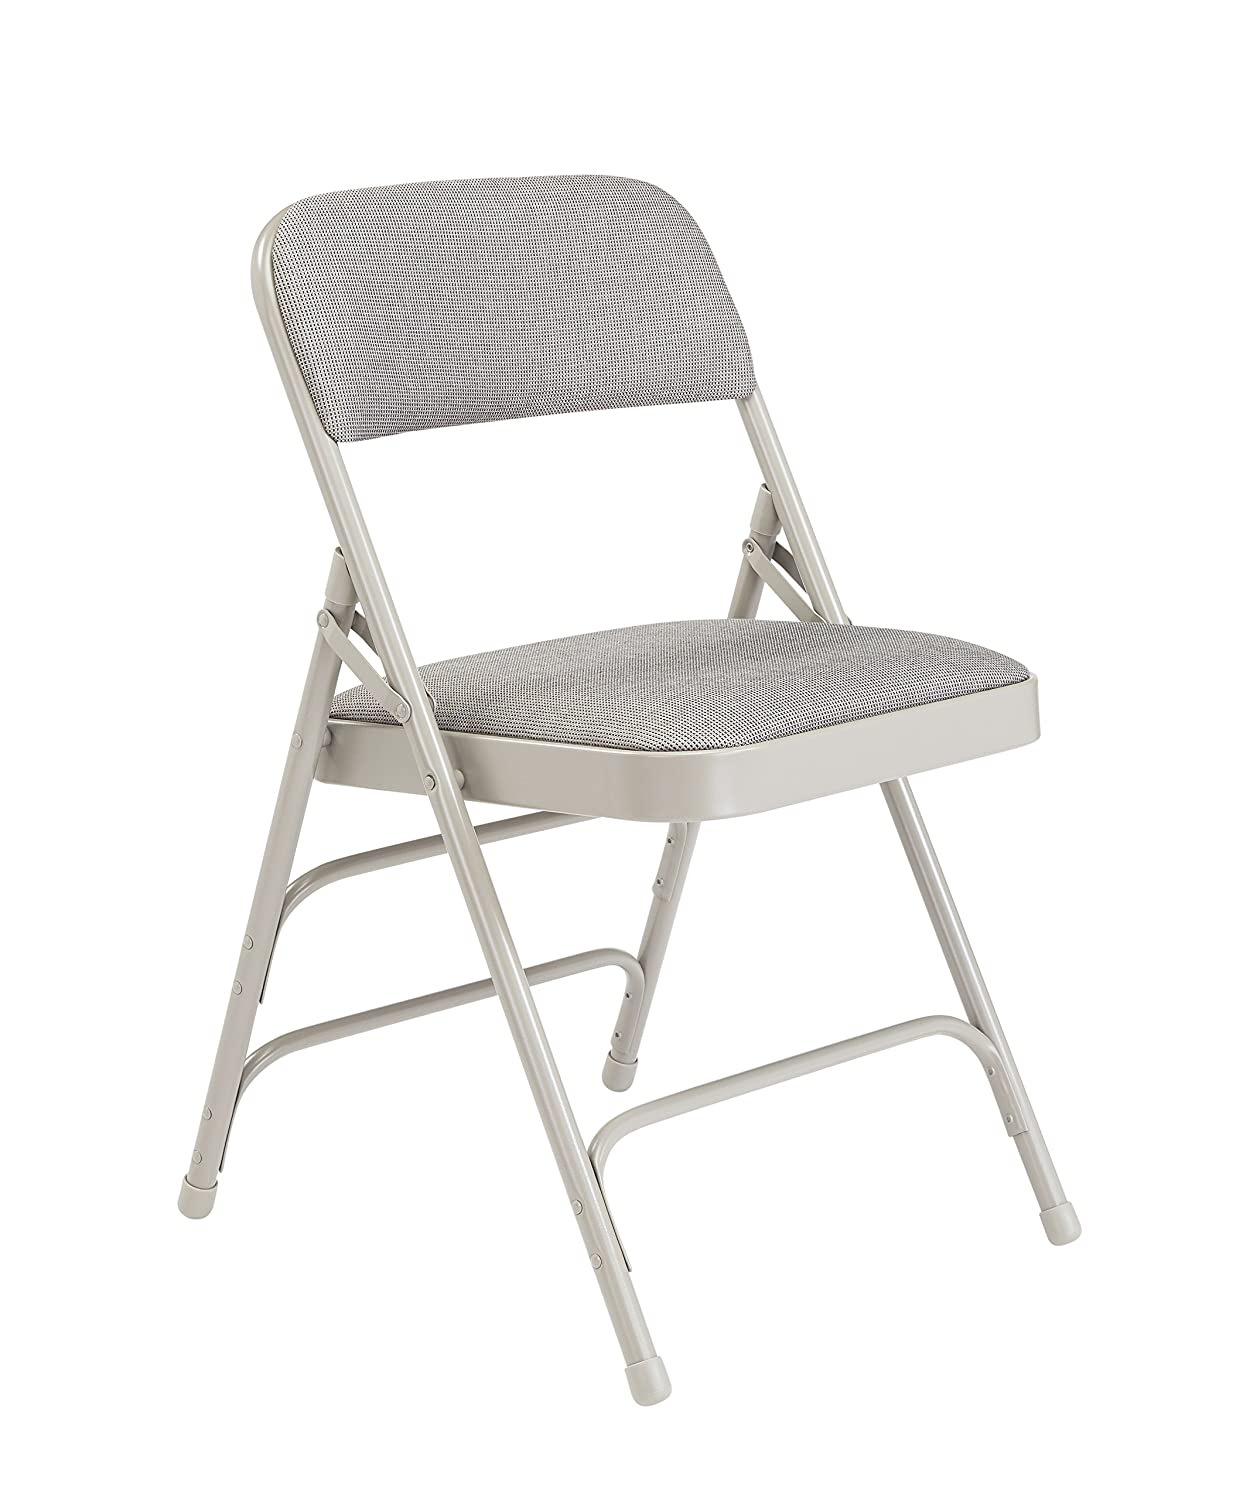 National Public Seating 2302 Steel Frame Upholstered Premium Fabric Seat and Back Folding Chair with Triple Brace, 480-Pound Capacity, Gray Stone/Gray, Carton of 4